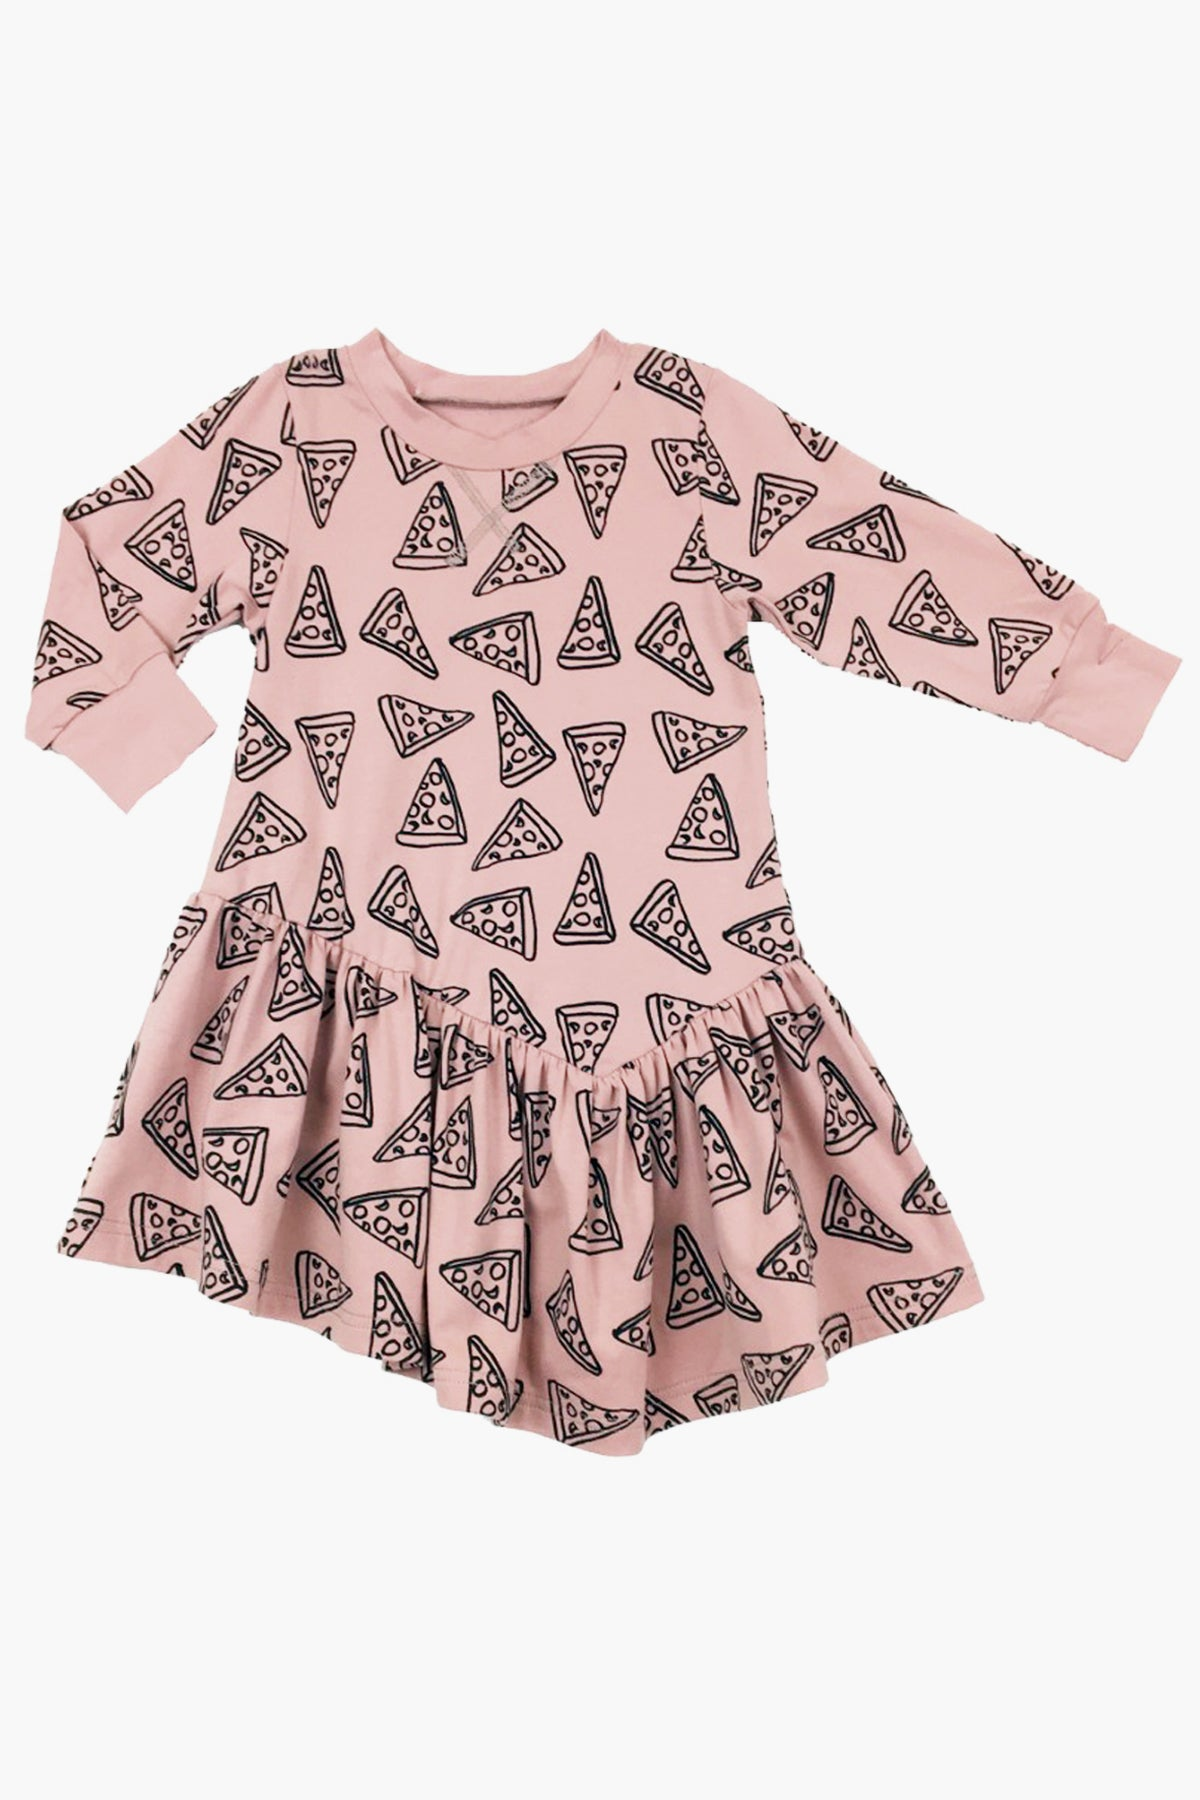 Peas and Queues Avery Girls Dress - Pink